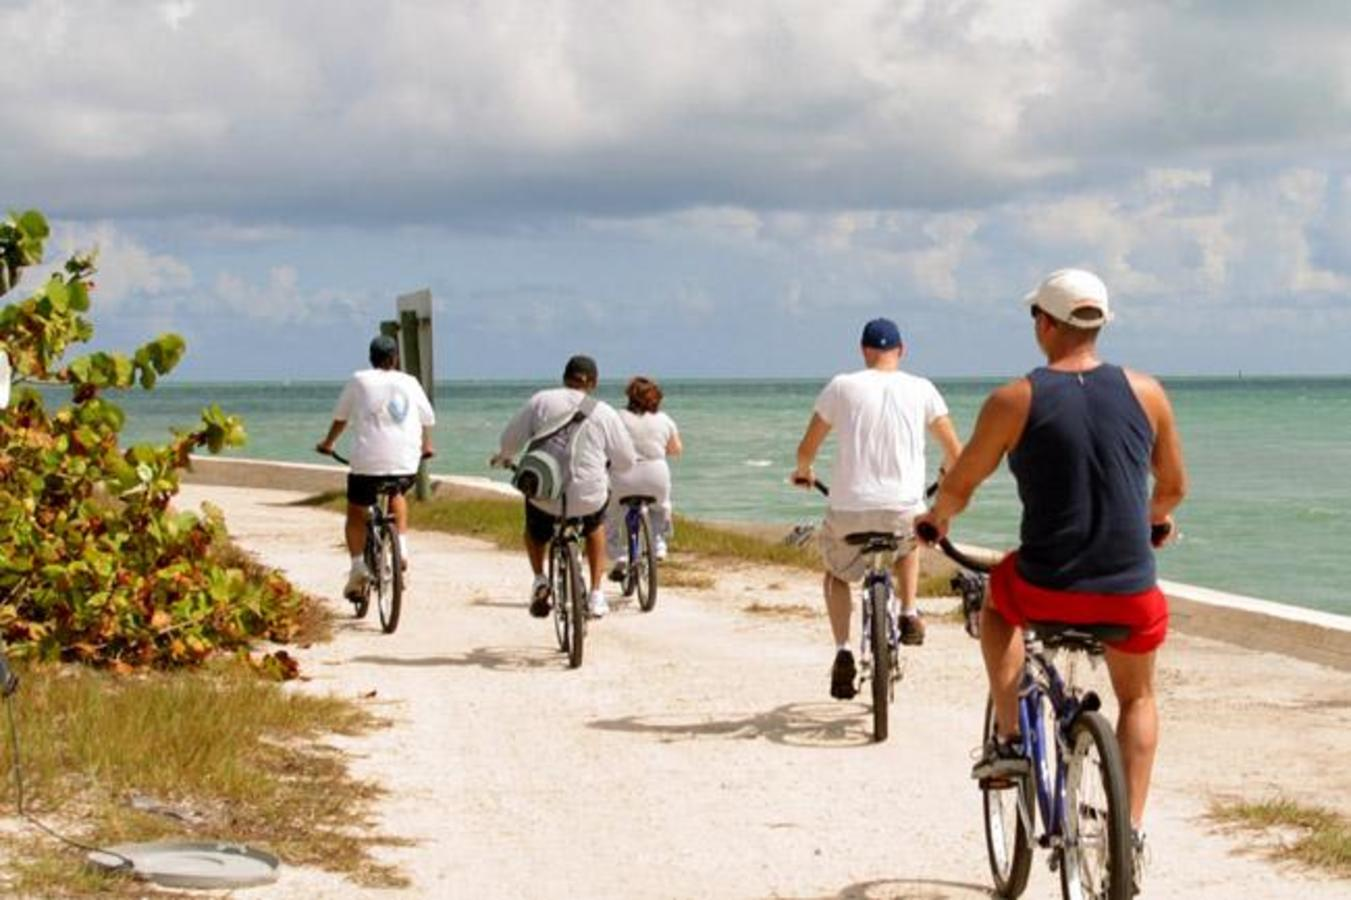 Key Biscayne - A Journey by Cycle